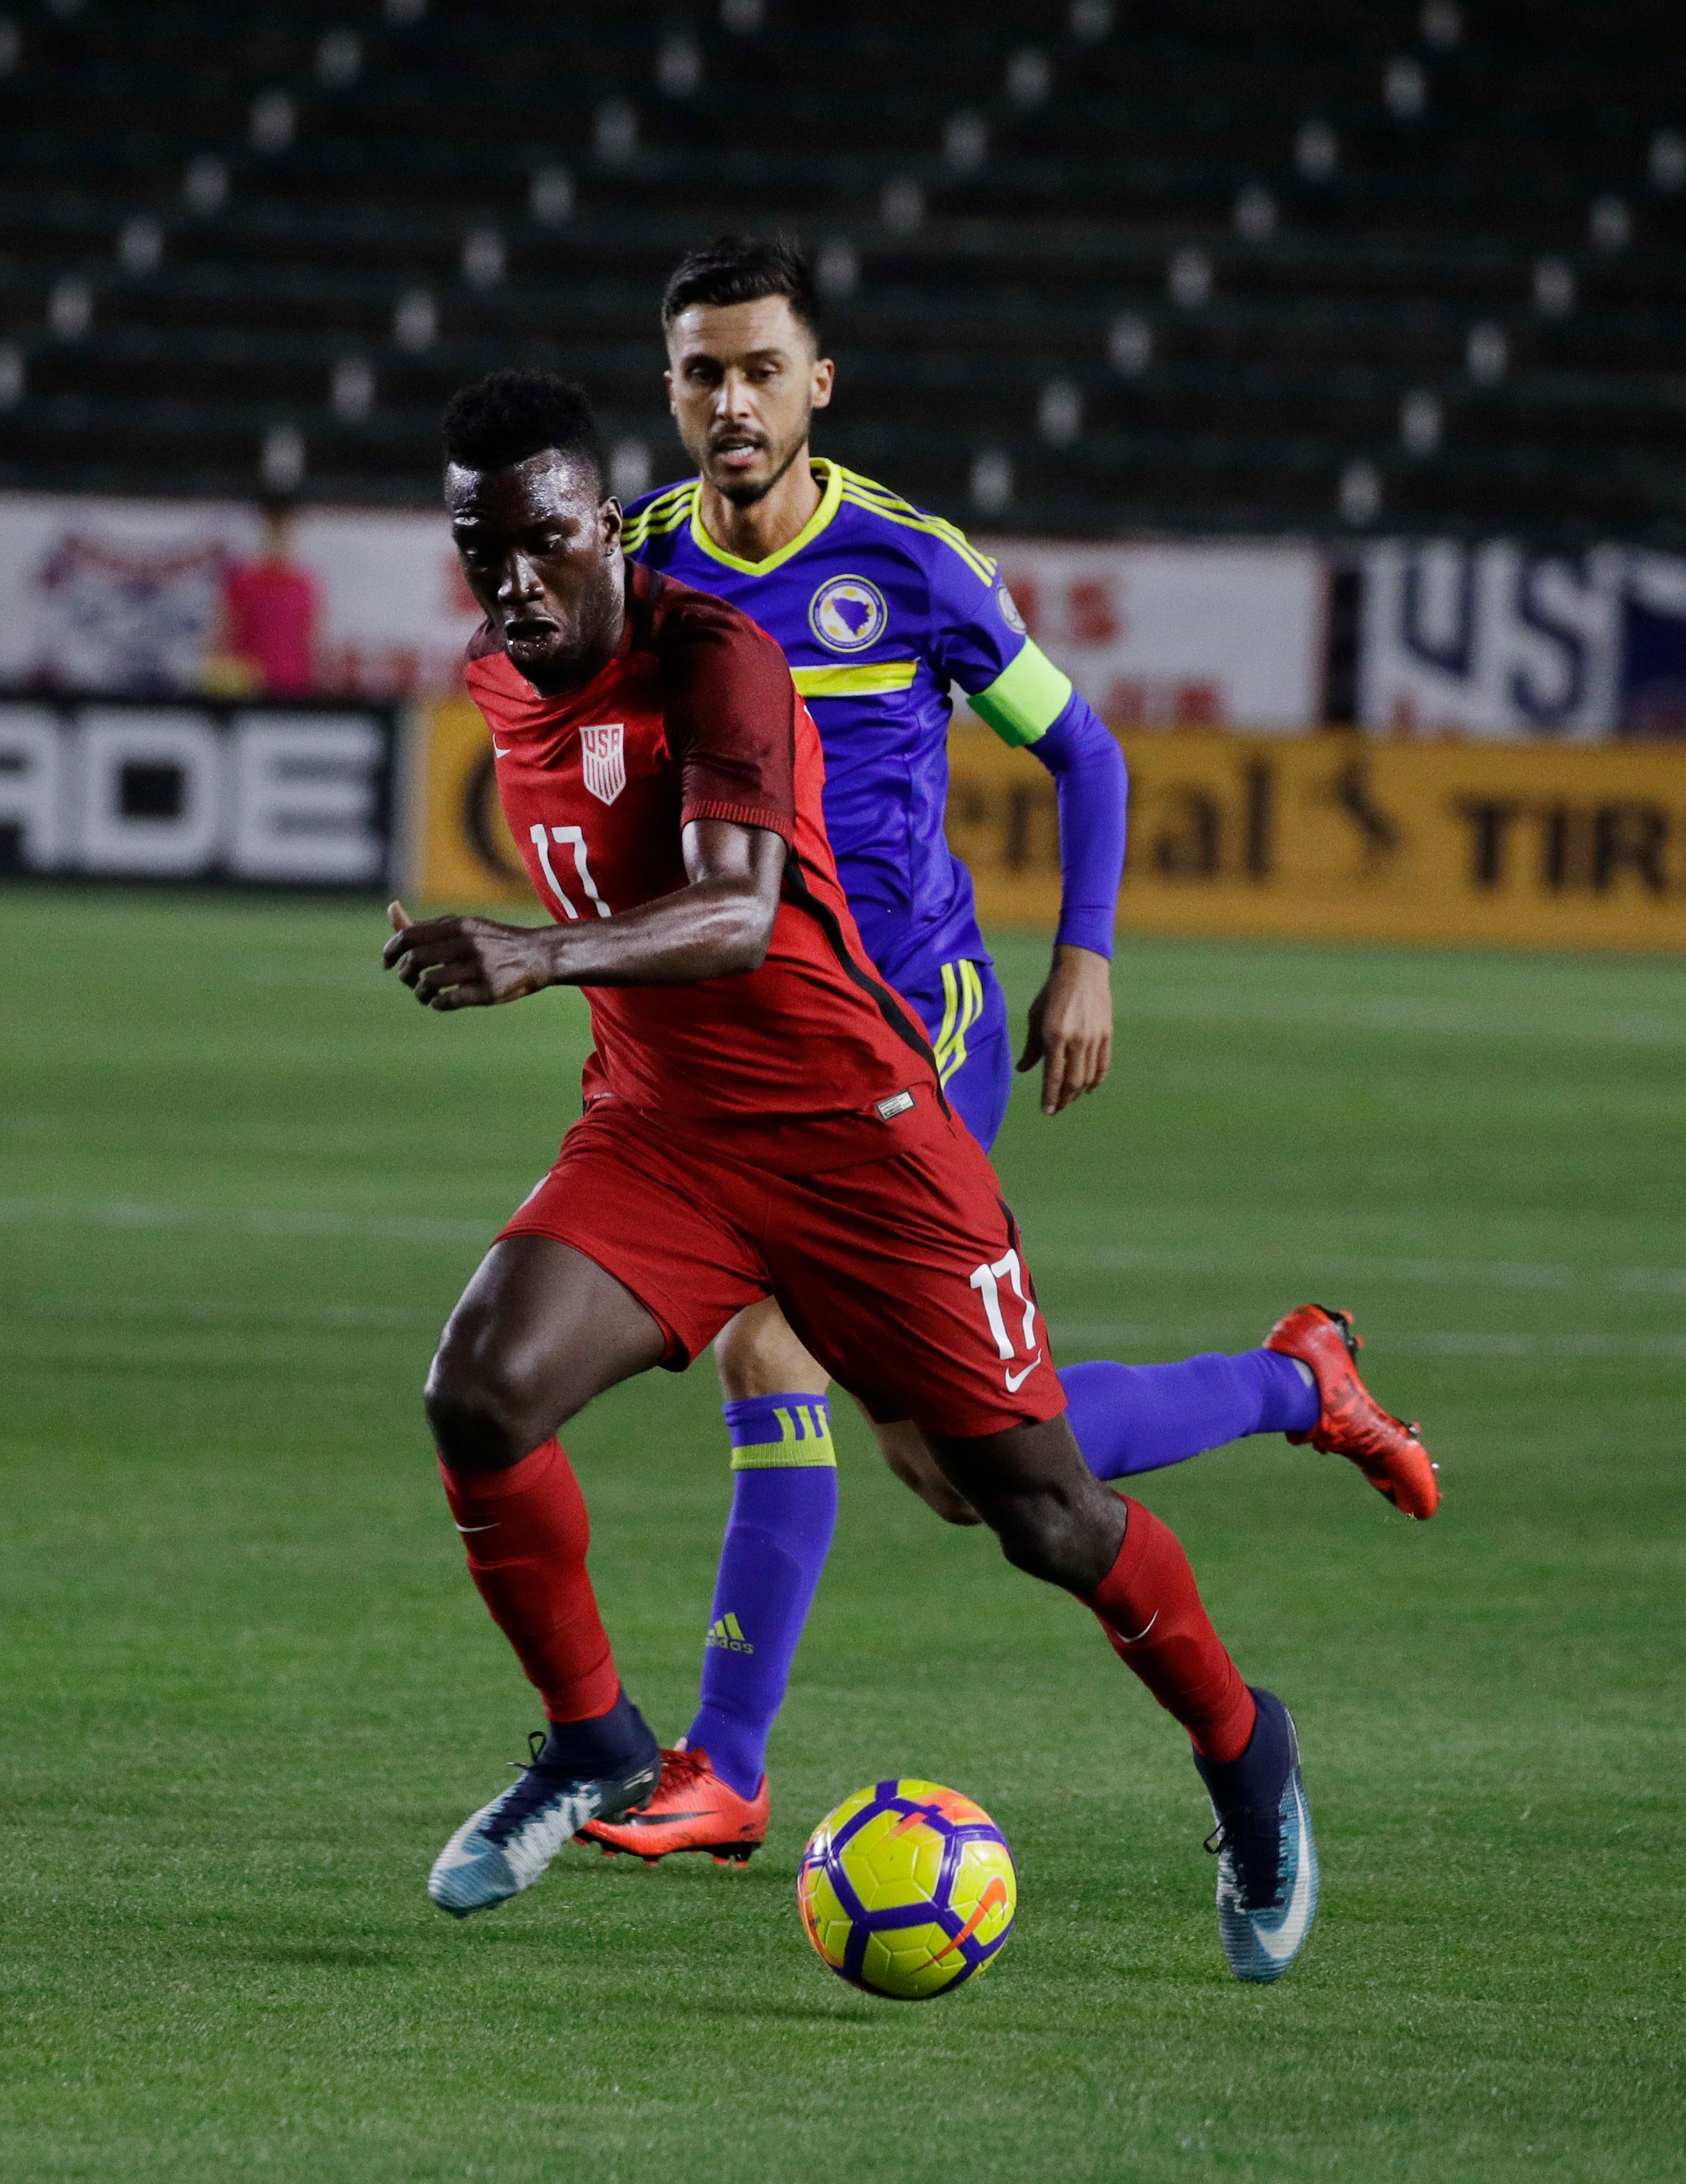 United States forward CJ Sapong, front, controls the ball against Bosnia and Herzegovina midfielder Haris Medunjanin during the first half of an international friendly soccer match on Sunday, Jan. 28, 2018, in Carson, Calif. (AP Photo/Jae C. Hong)